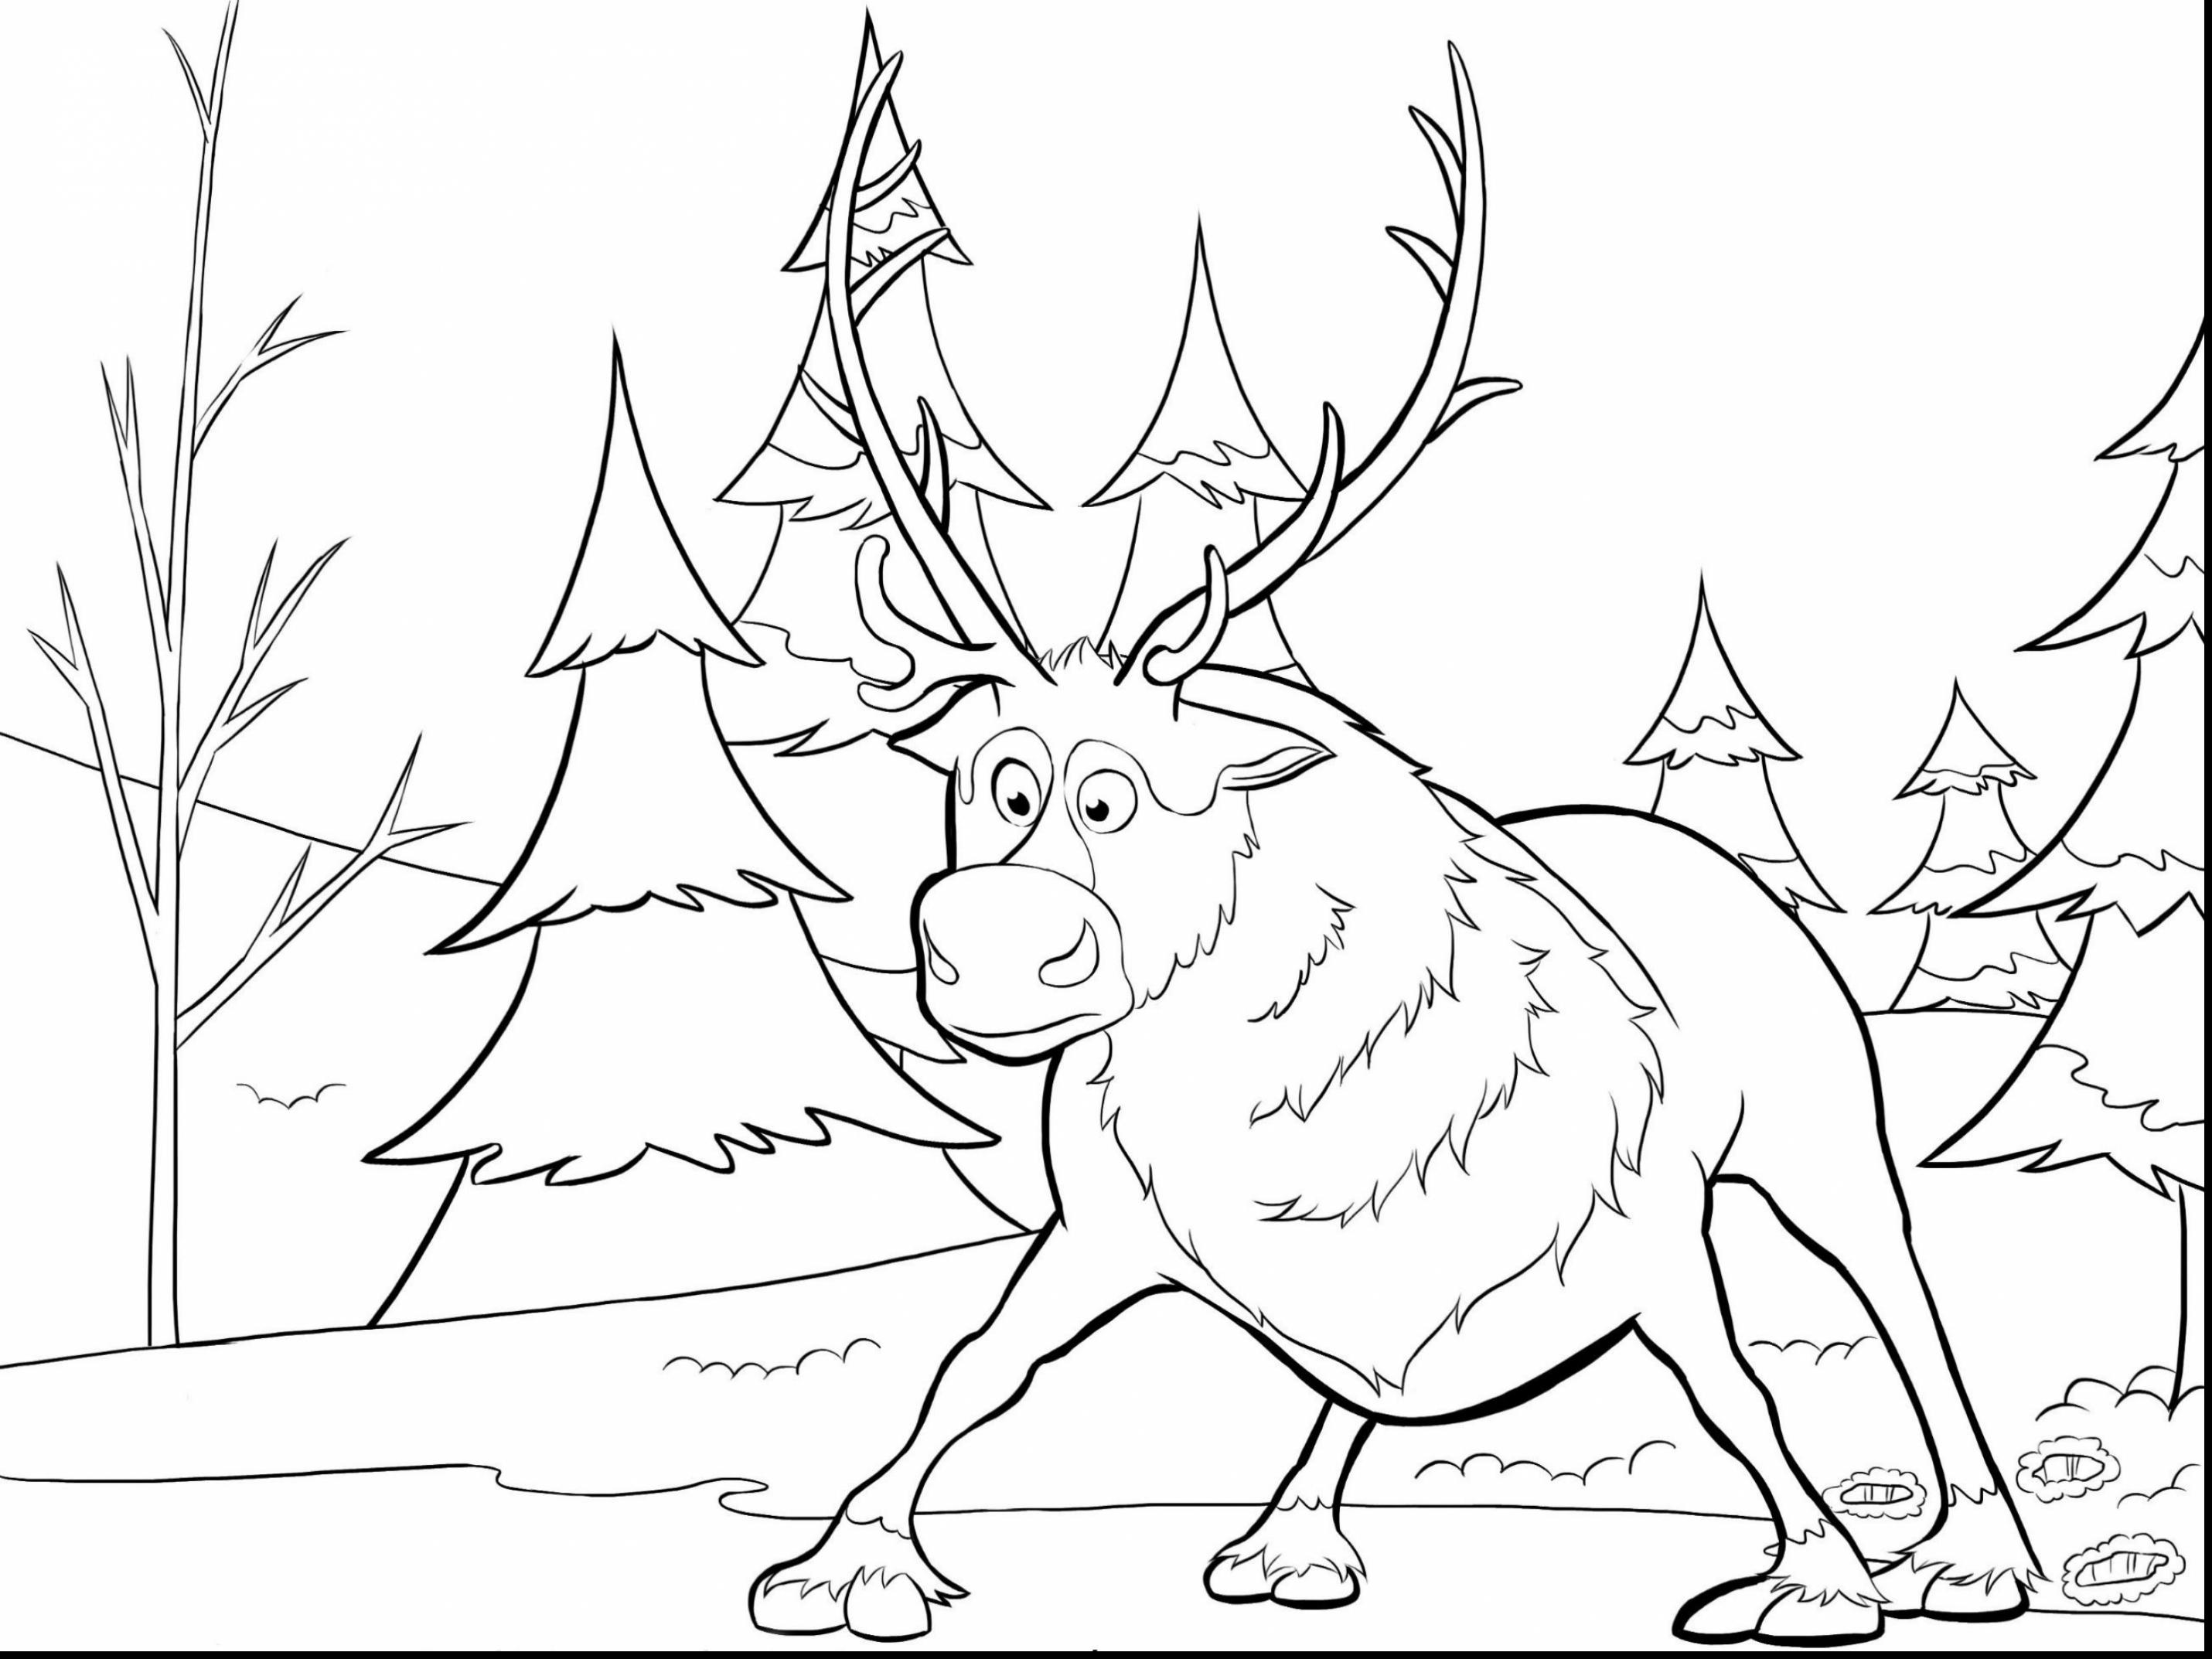 Free Polar Express Coloring Pages at GetDrawings.com | Free for ...